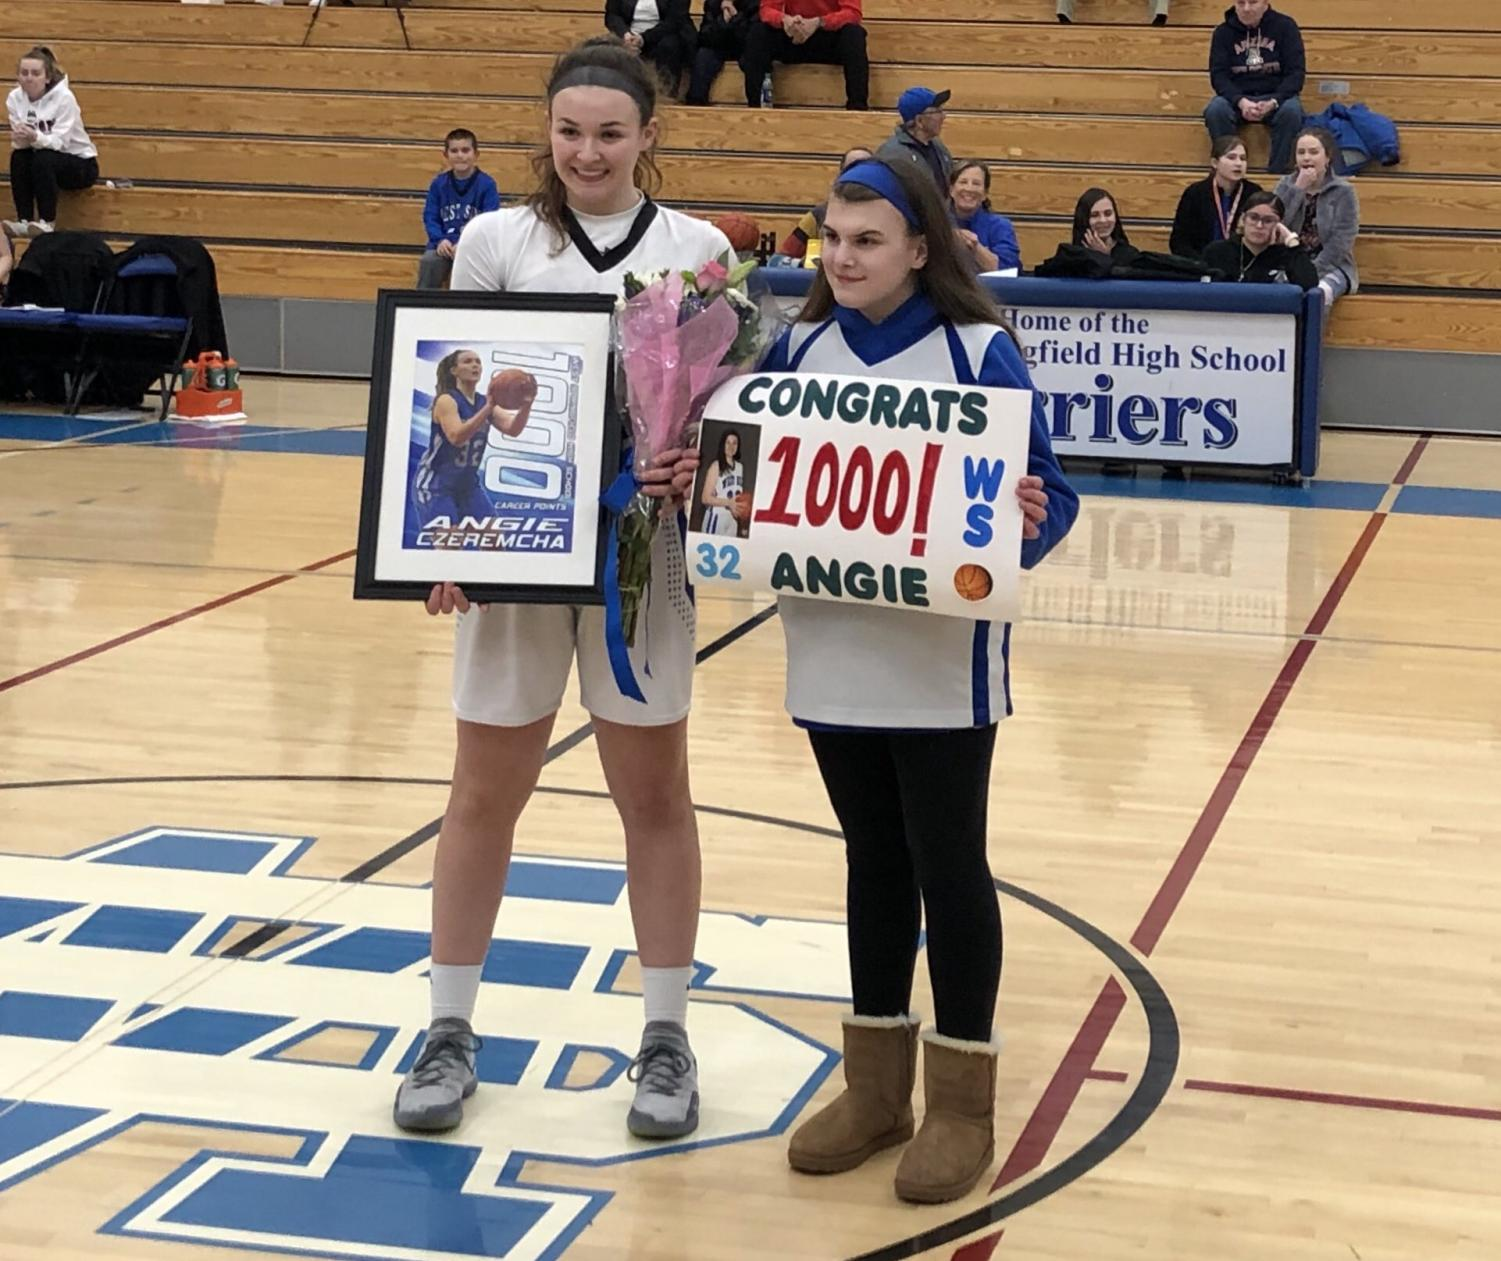 Angie Czeremcha and her sister Gina Czeremcha celebrates Angie's 1,000th point.